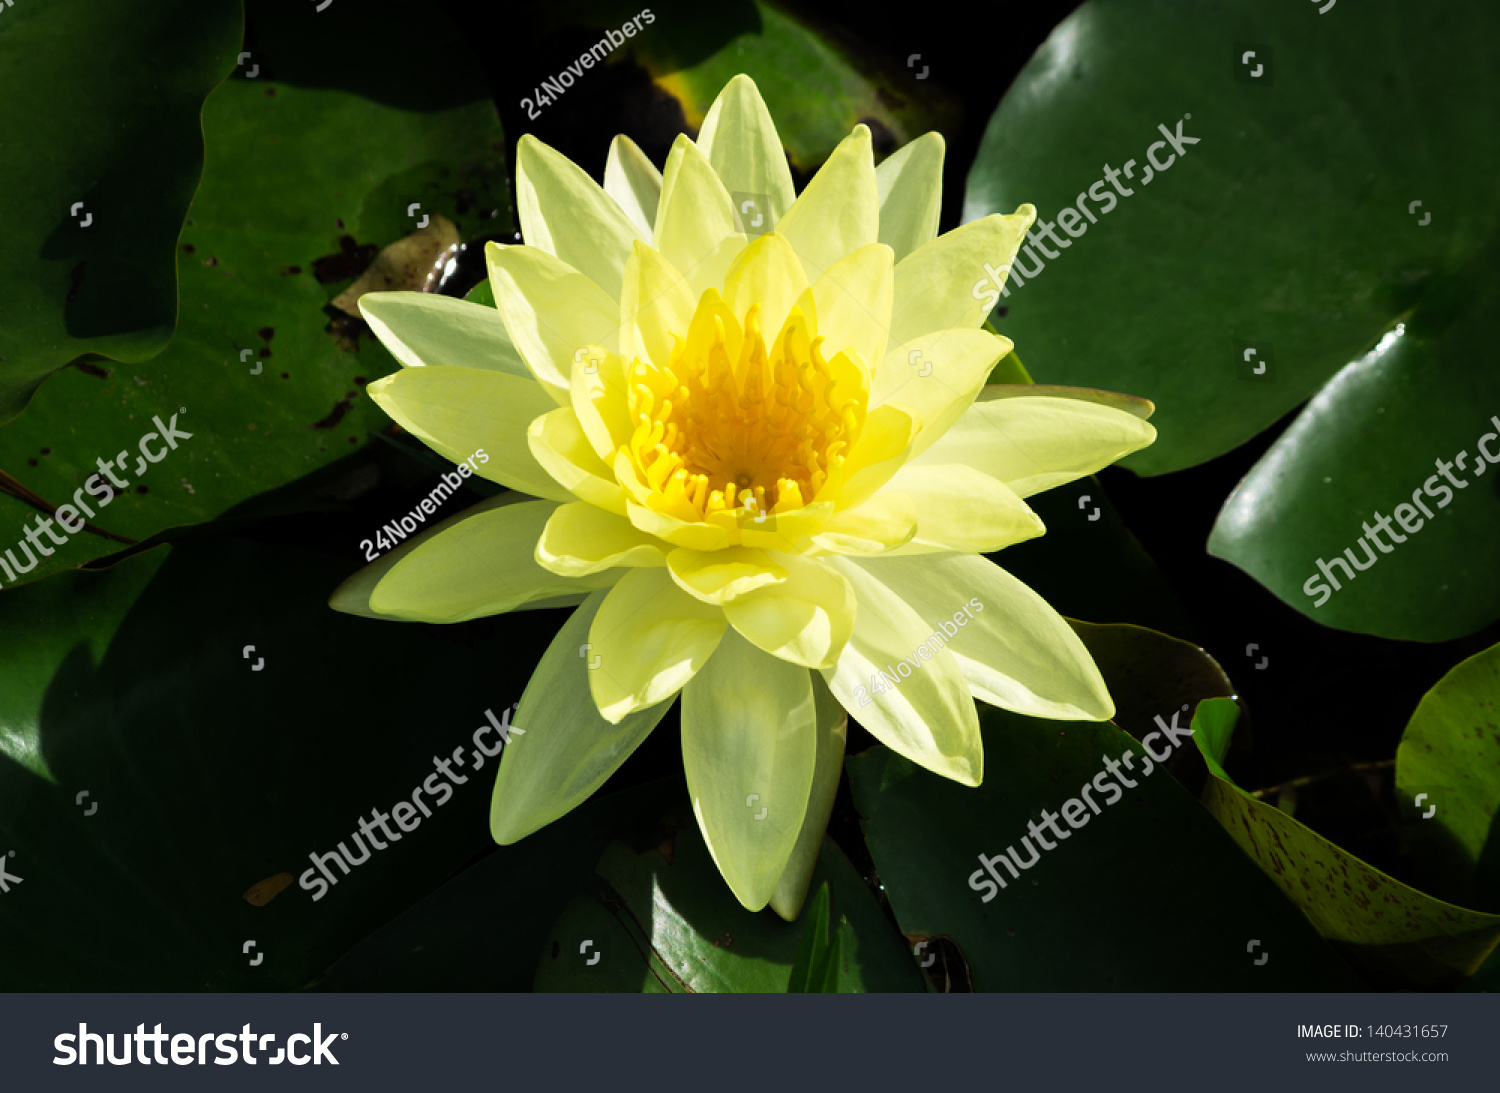 Blossom Lotus Flower Thailand Pond Focus Stock Photo Edit Now